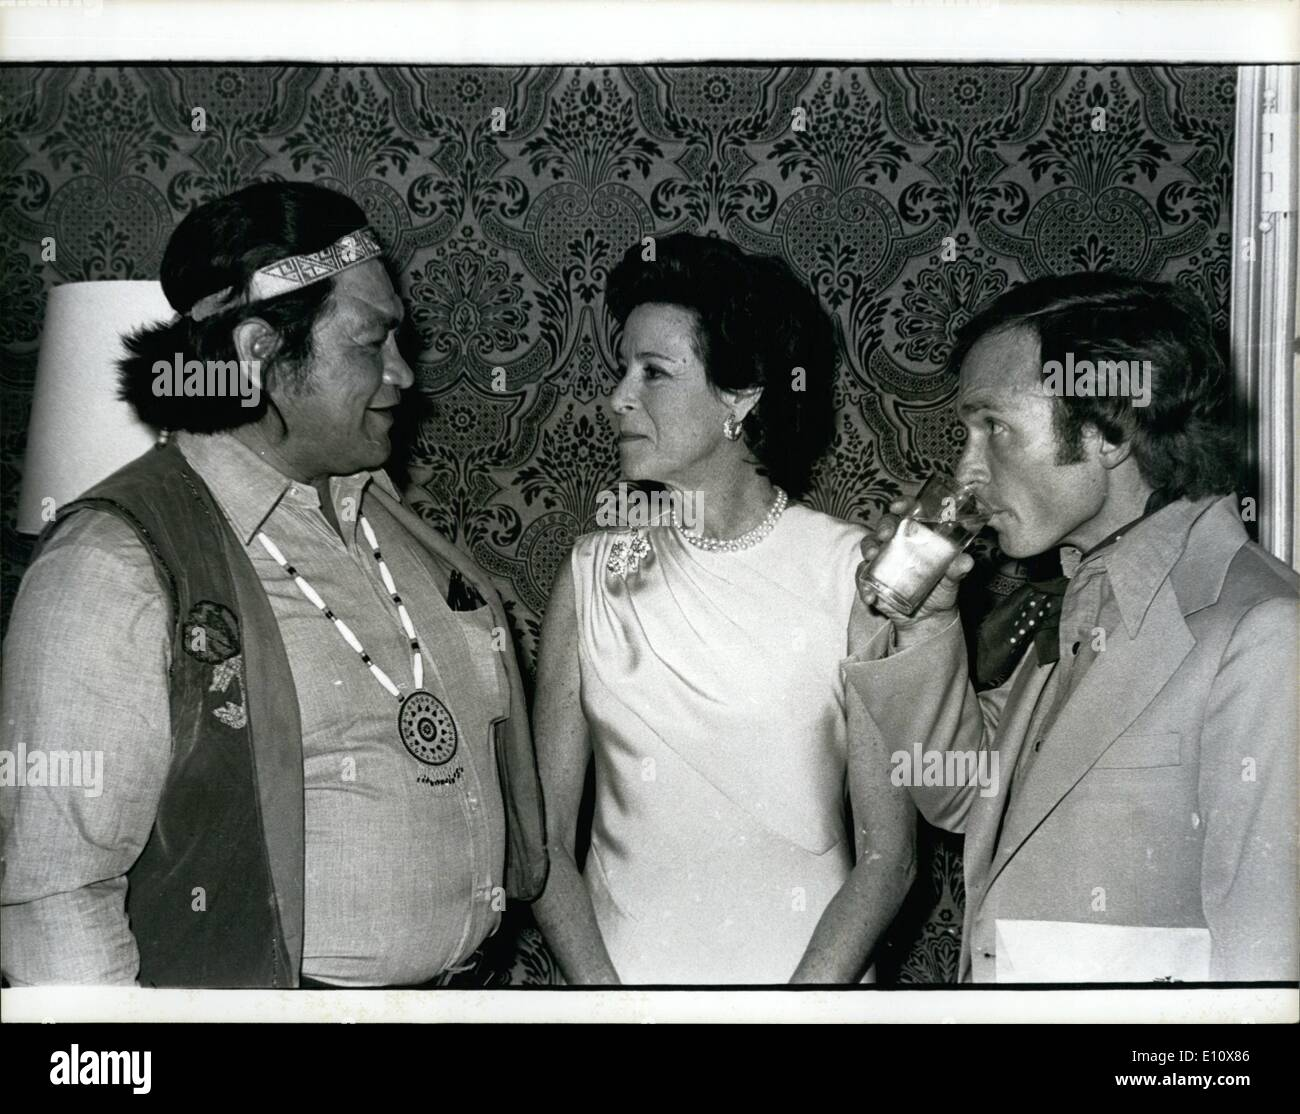 Lummi Indian - Kitty Carlyle - Dick Cauett at the letter's house, NYC. Pictu